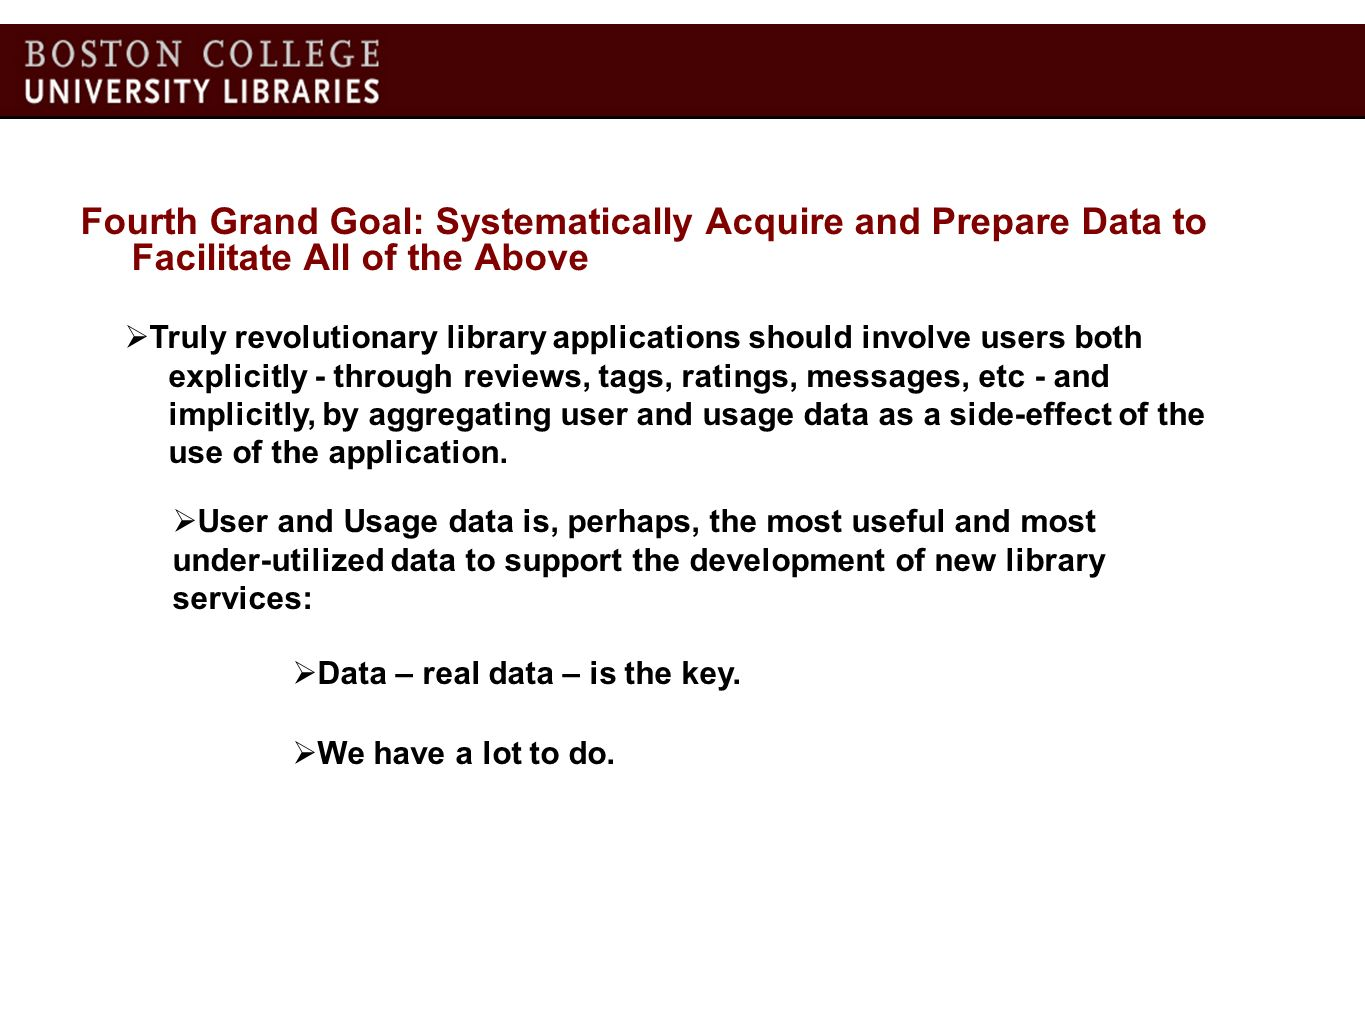 Fourth Grand Goal: Systematically Acquire and Prepare Data to Facilitate All of the Above Truly revolutionary library applications should involve user